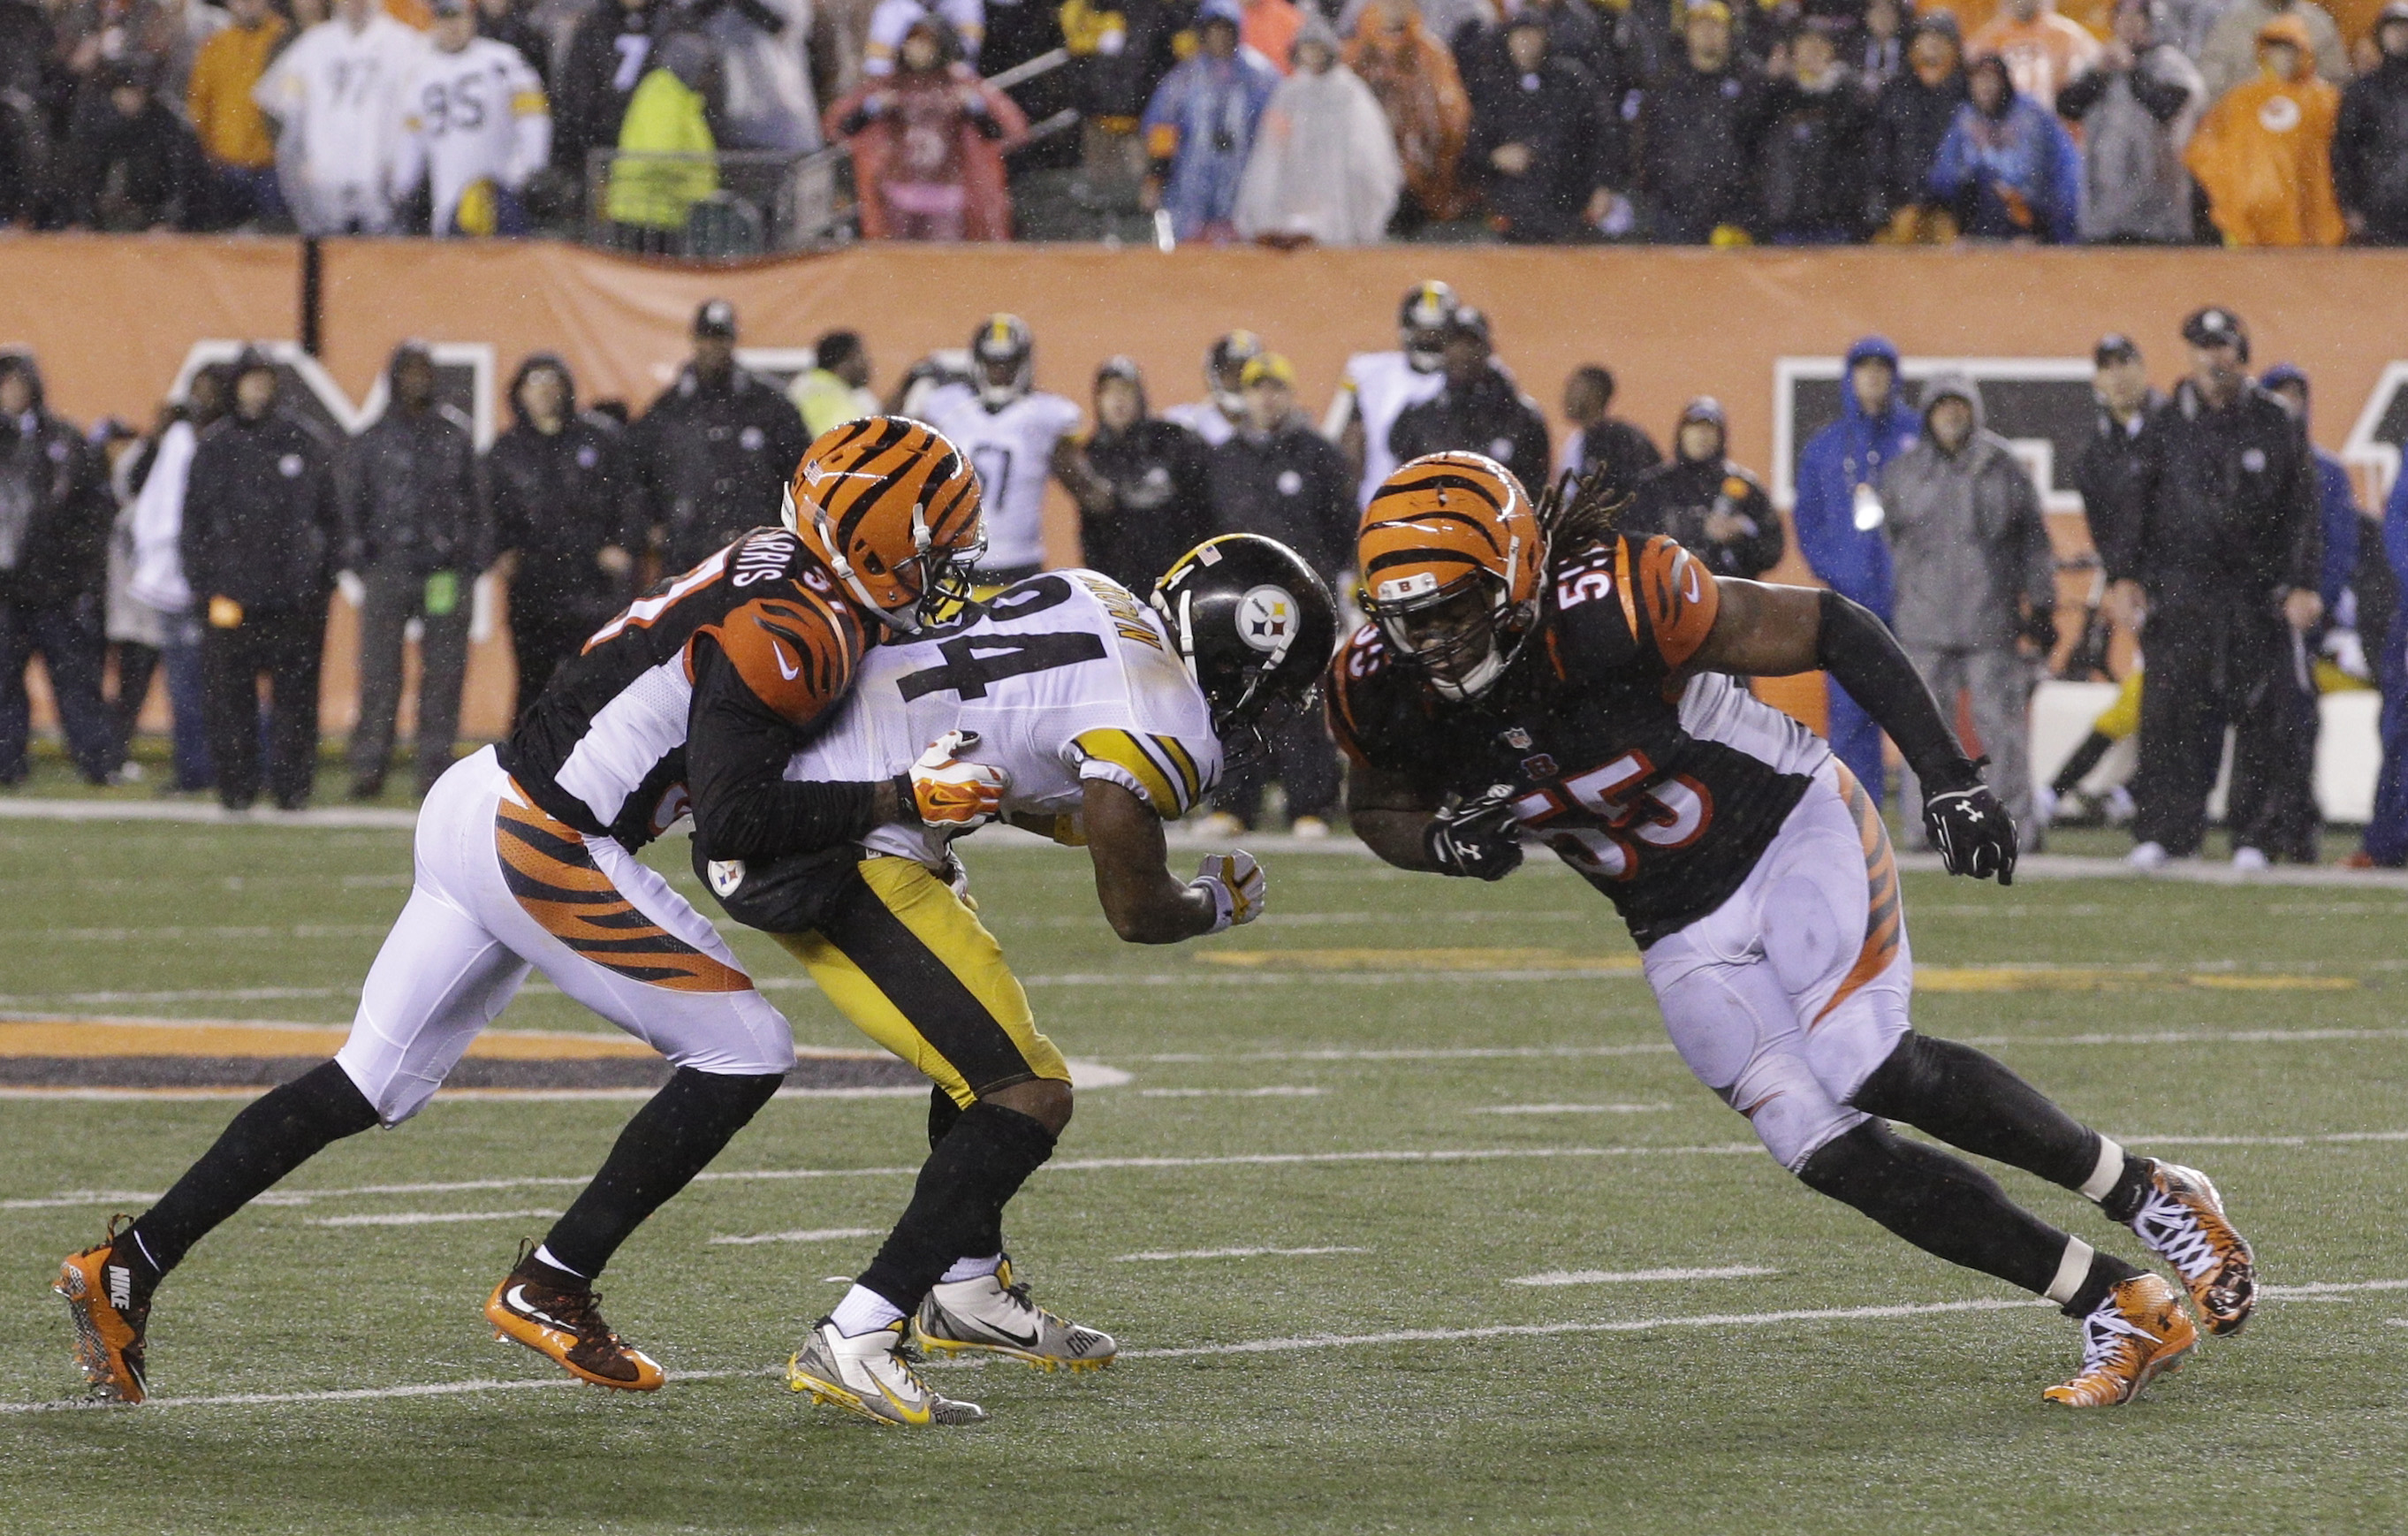 Cincinnati Bengals' Vontaze Burfict (55) runs into Pittsburgh Steelers' Antonio Brown (84) during the second half of an NFL wild-card playoff football game Sunday, Jan. 10, 2016, in Cincinnati. Pittsburgh won 18-16. Burfict was called for a penalty on the